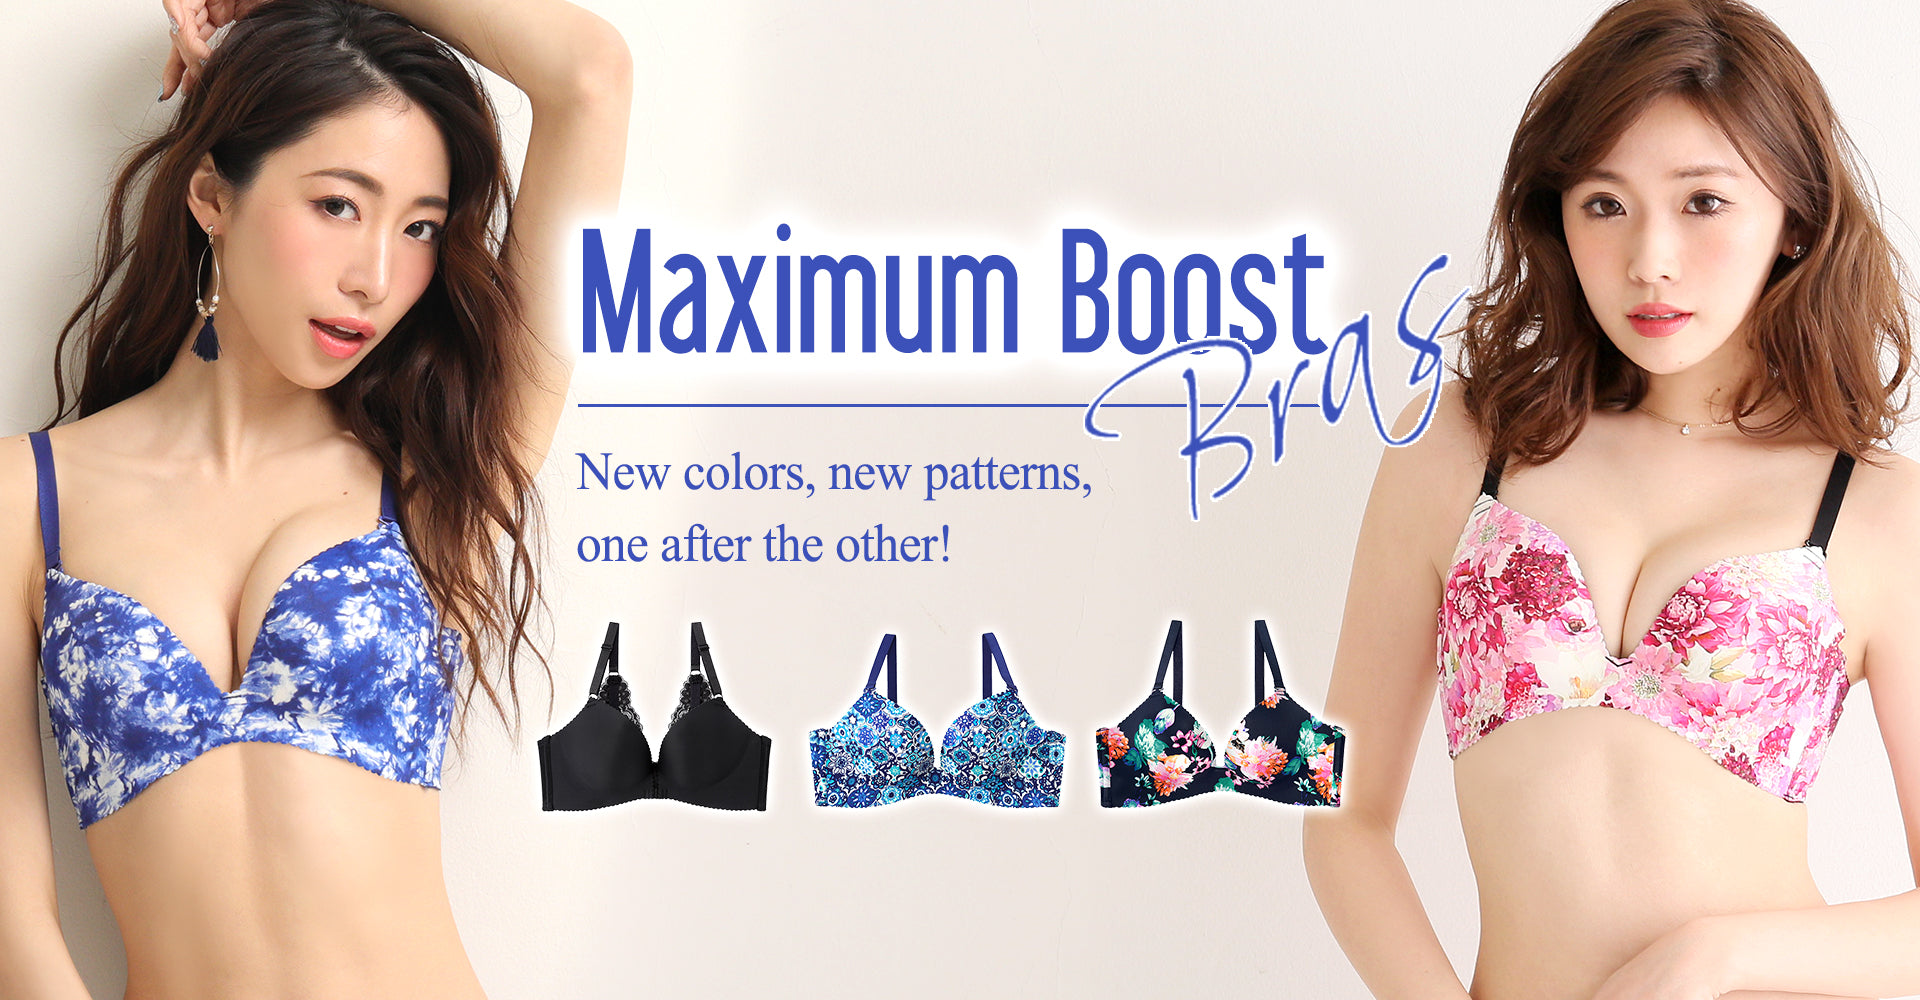 MAXIMUM BOOST BRA